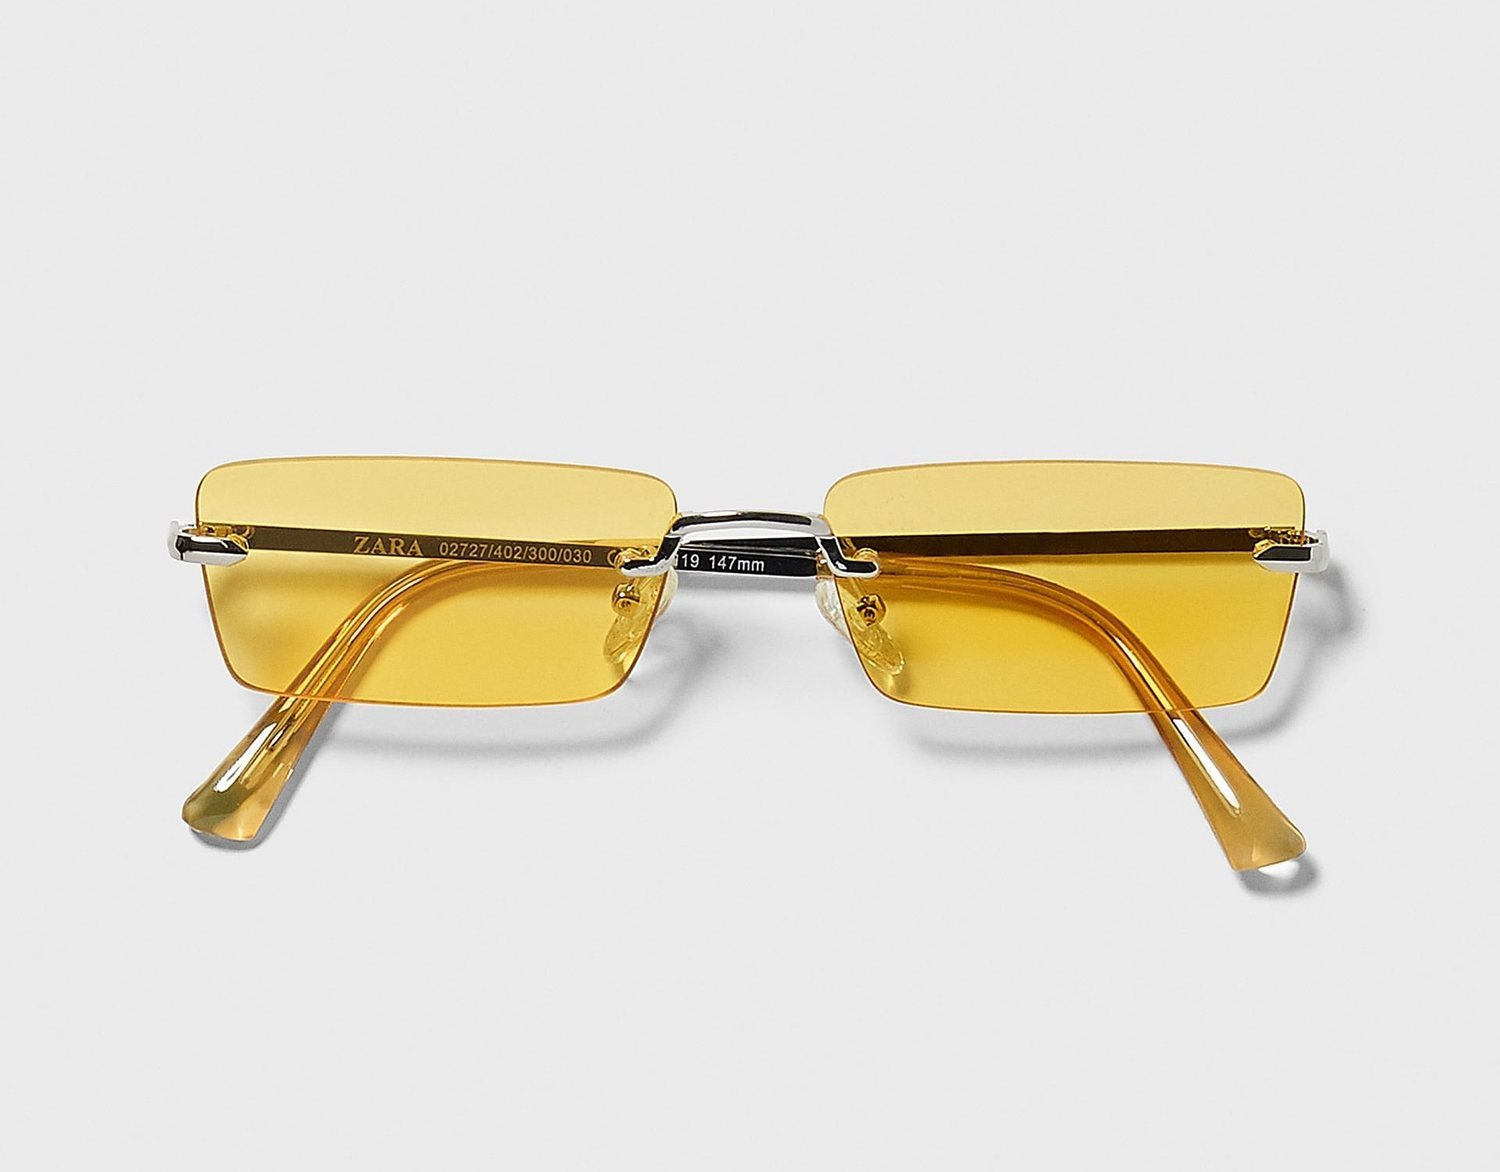 Gafas rectangulares con montura al aire y cristal coloreado.